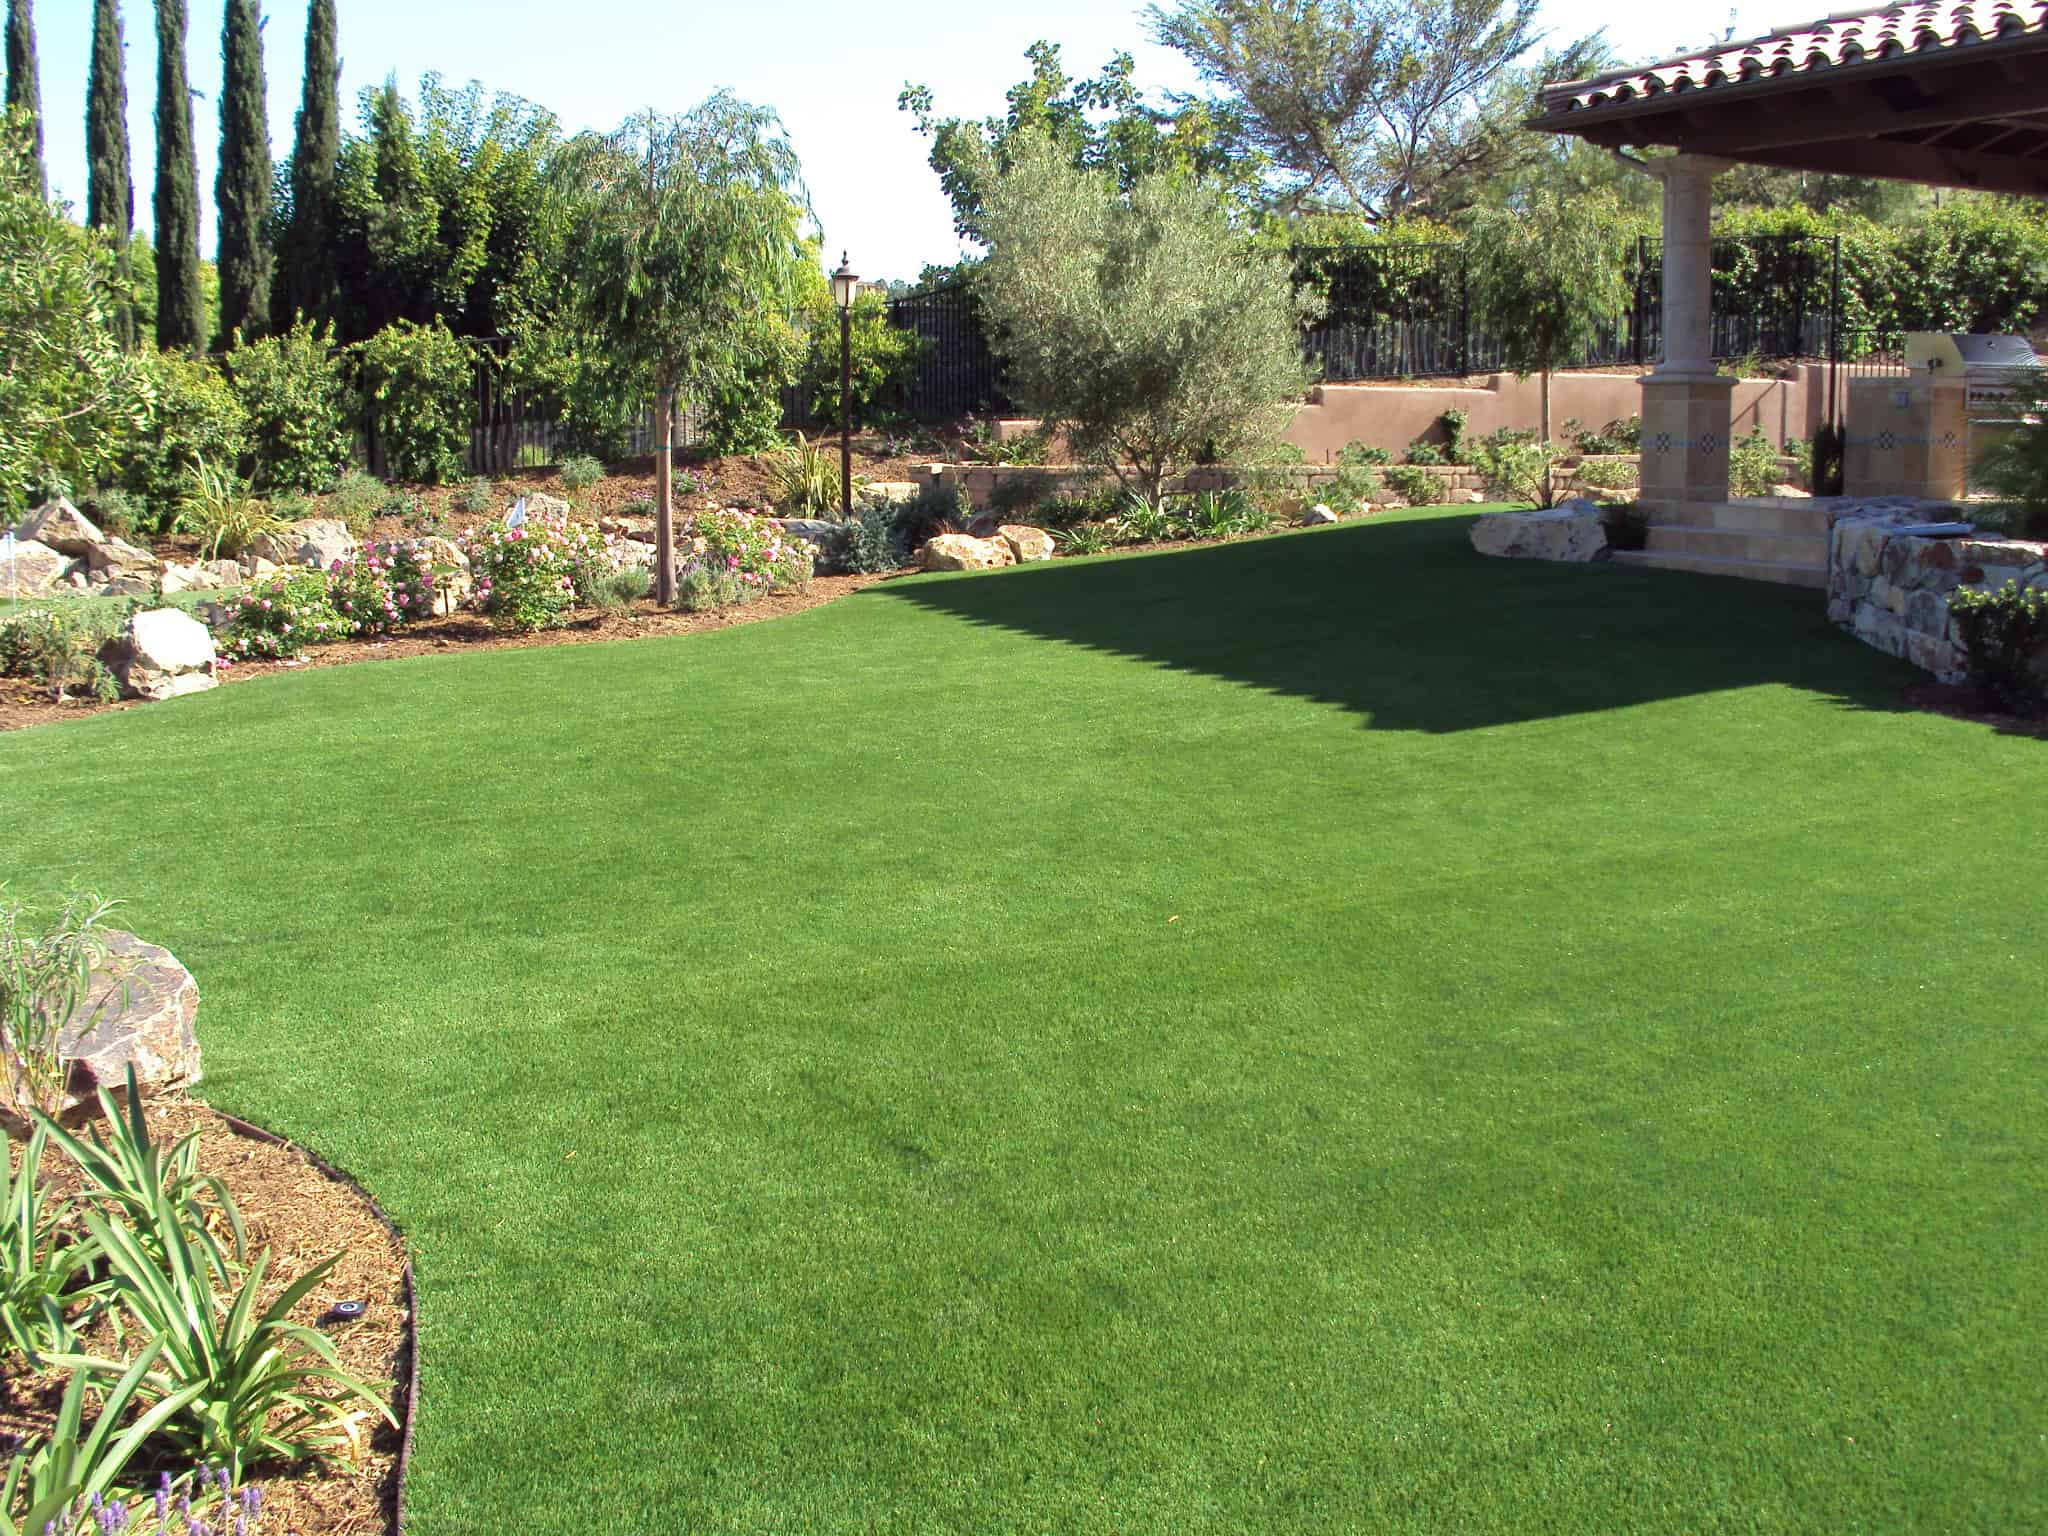 Backyard Summer Fun Family Activities - EasyTurf ... on Artificial Turf Backyard Ideas id=42912